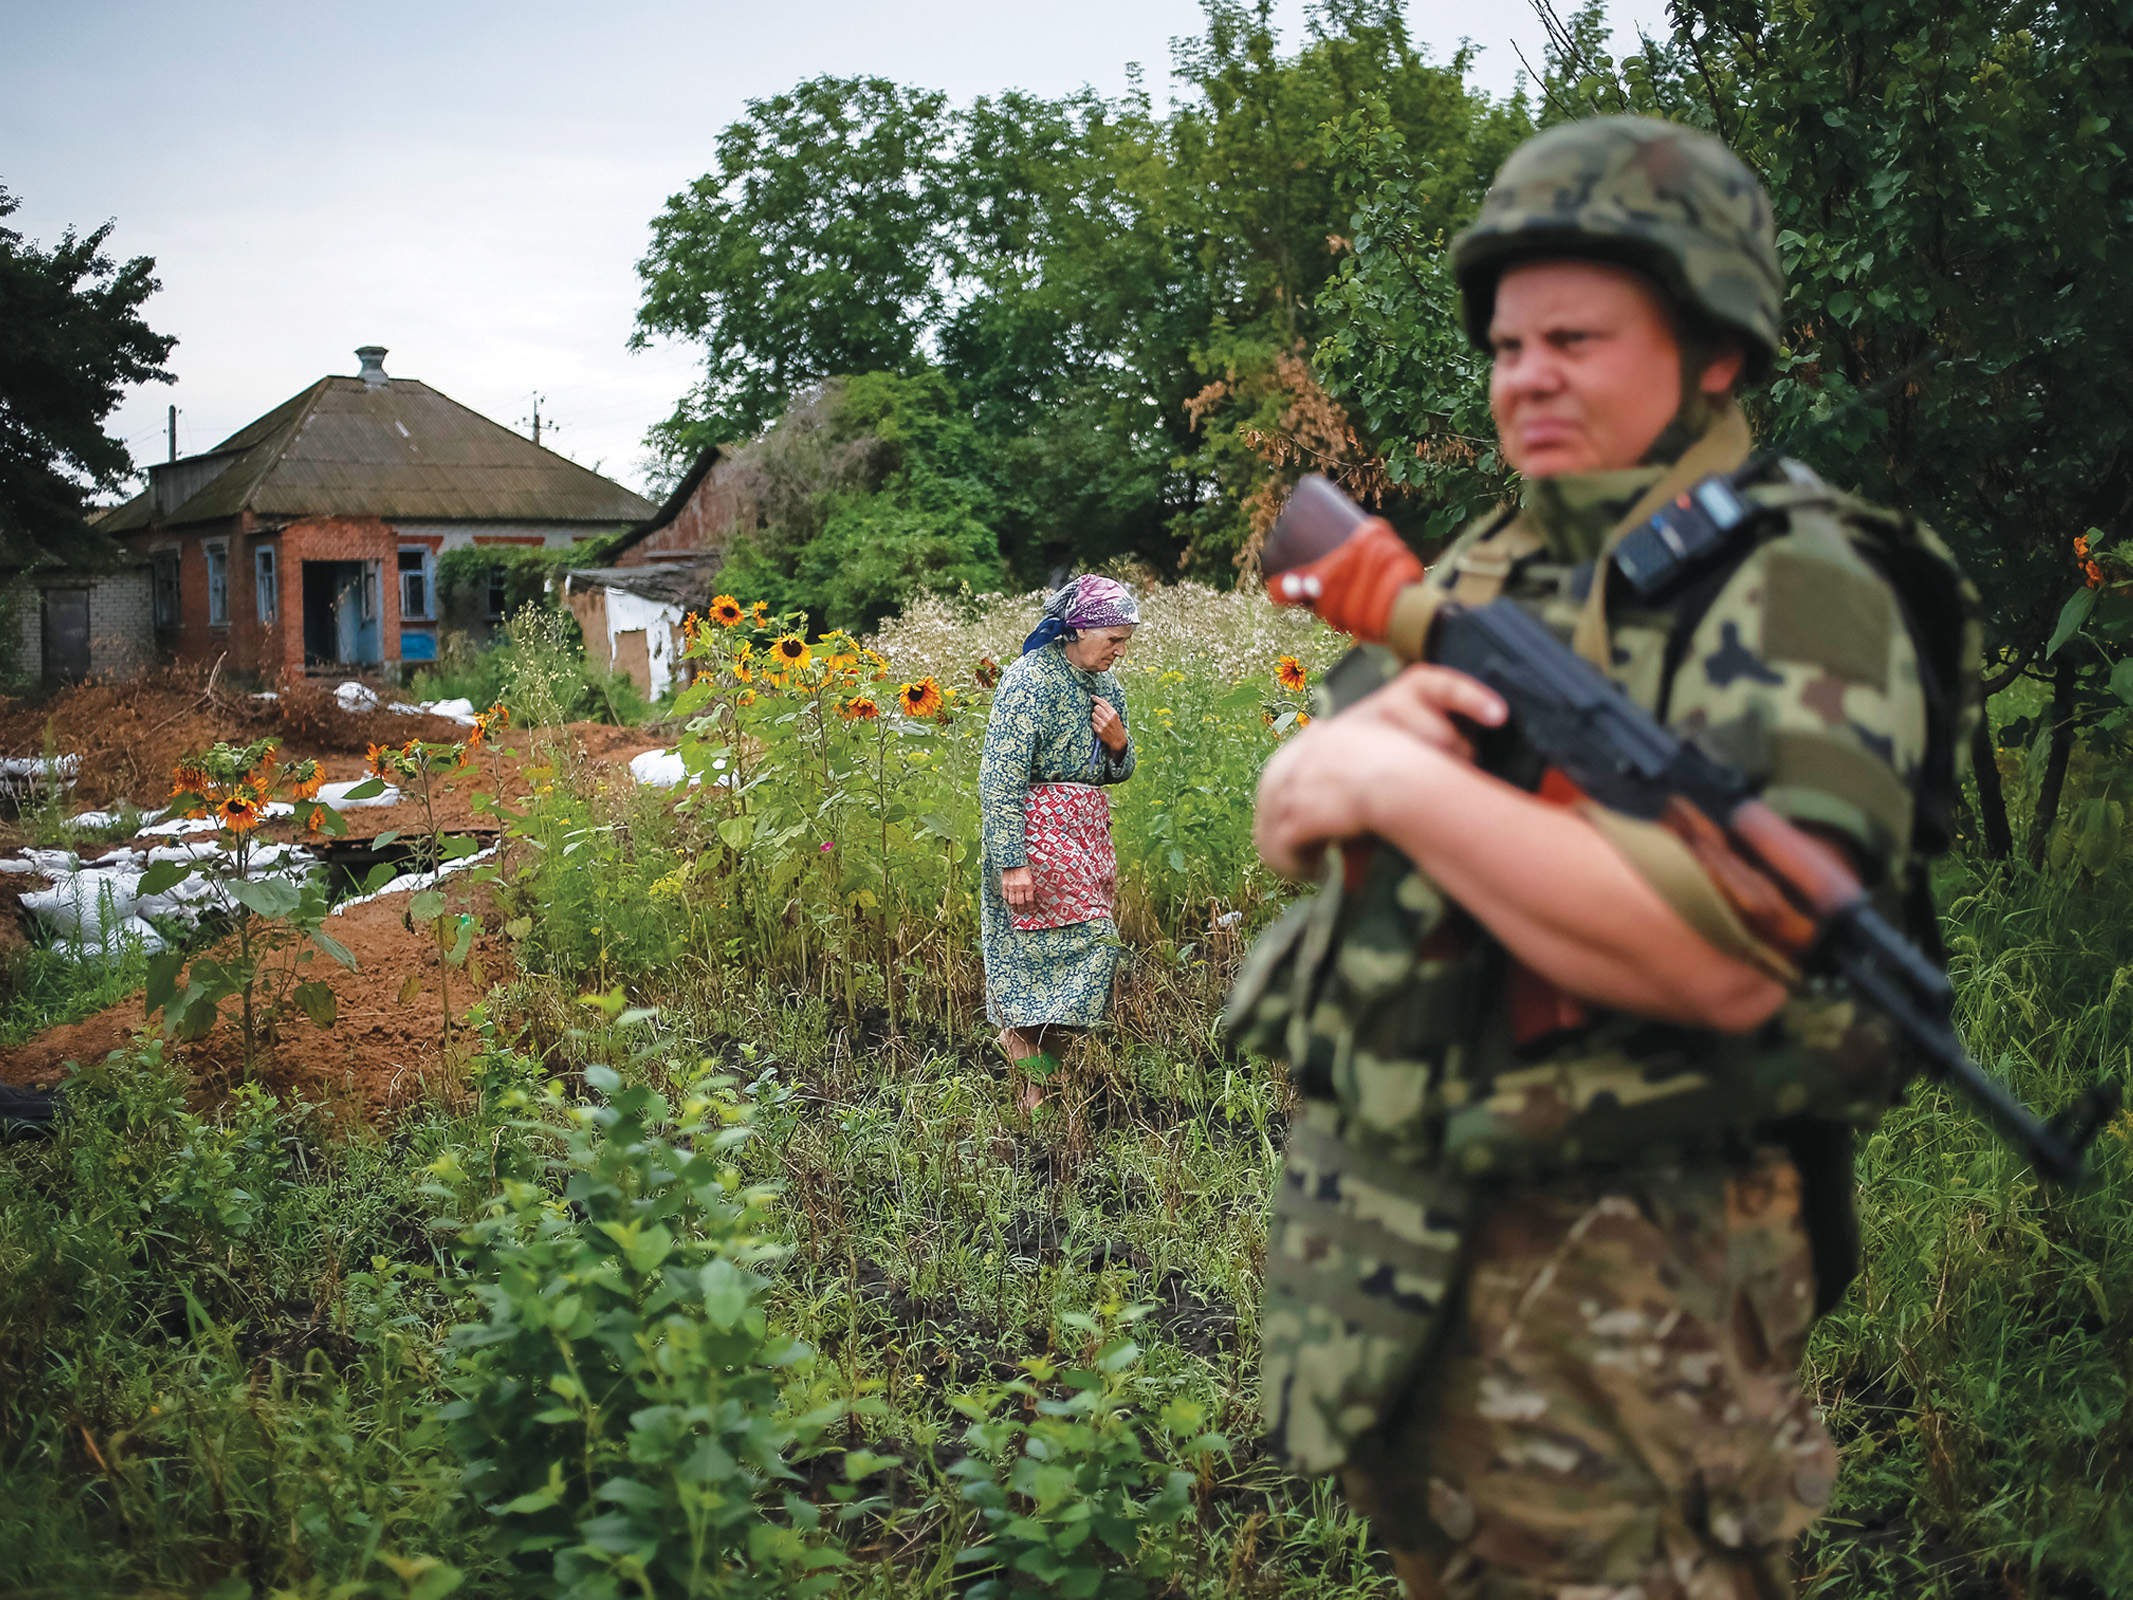 Meet the ordinary Ukrainians arming the country against Russian separatists